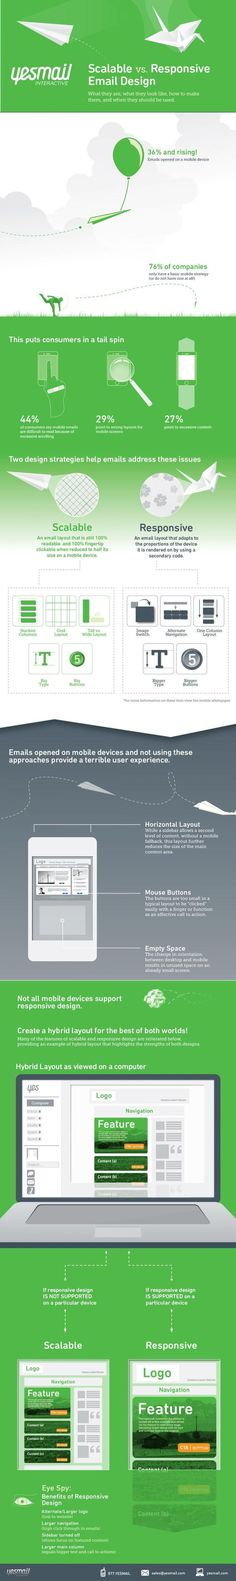 scalable Vs. responsive email design - #DEM email #marketing